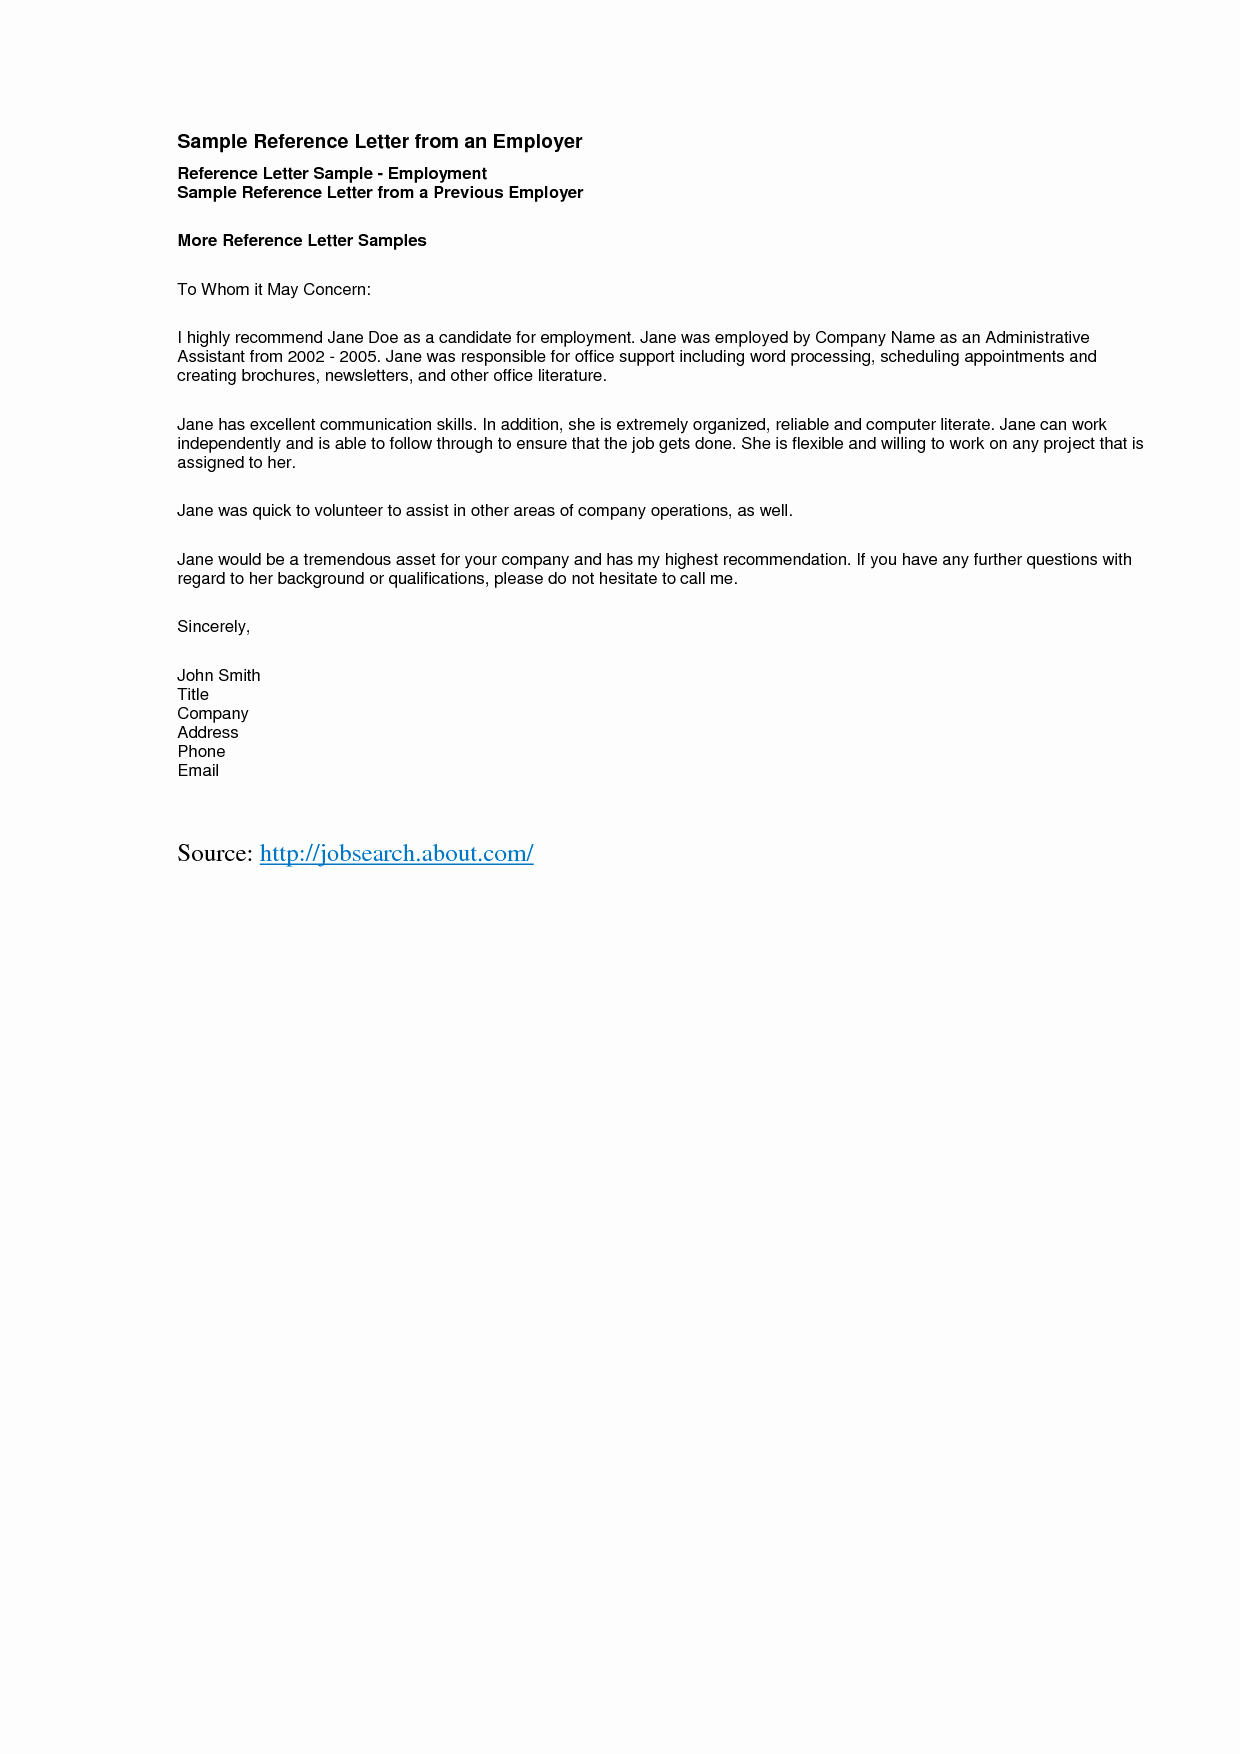 Job Recommendation Letter Sample Template Lovely Reference Letter Template Best Templatepersonal